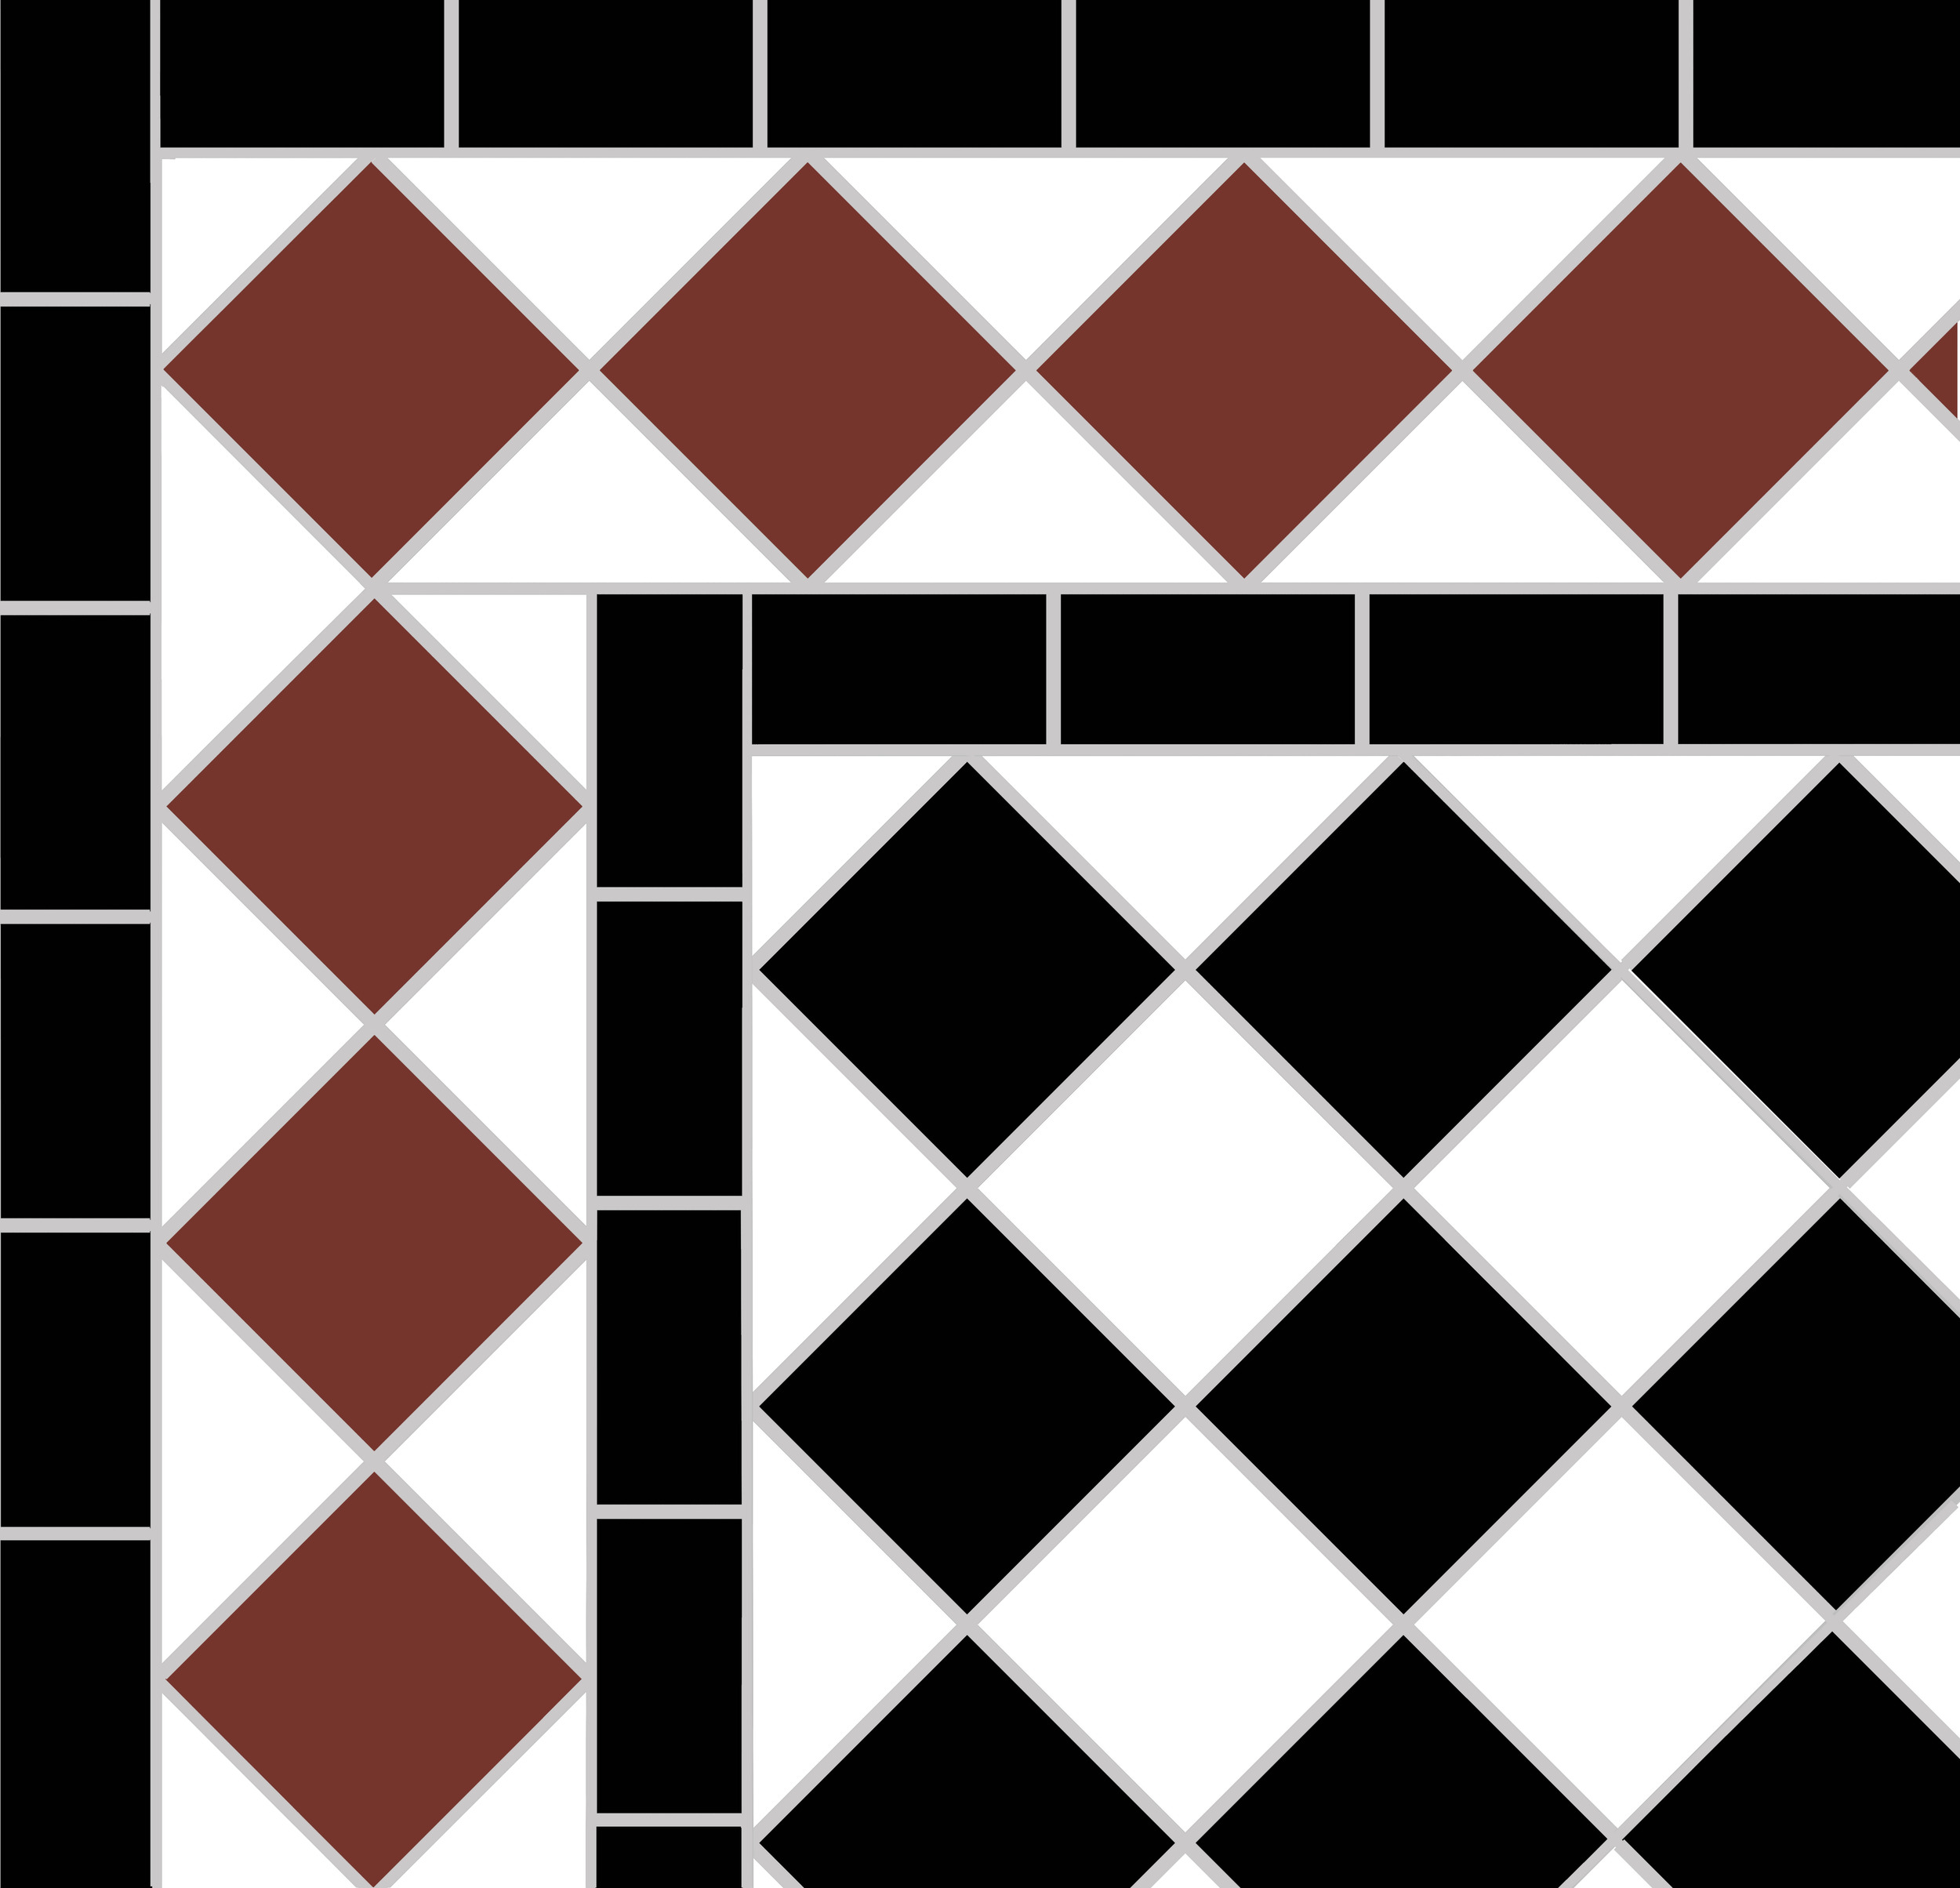 Black and white victorian tile pattern showing corner detail of the Red  diamond border  with a single black line on each side.